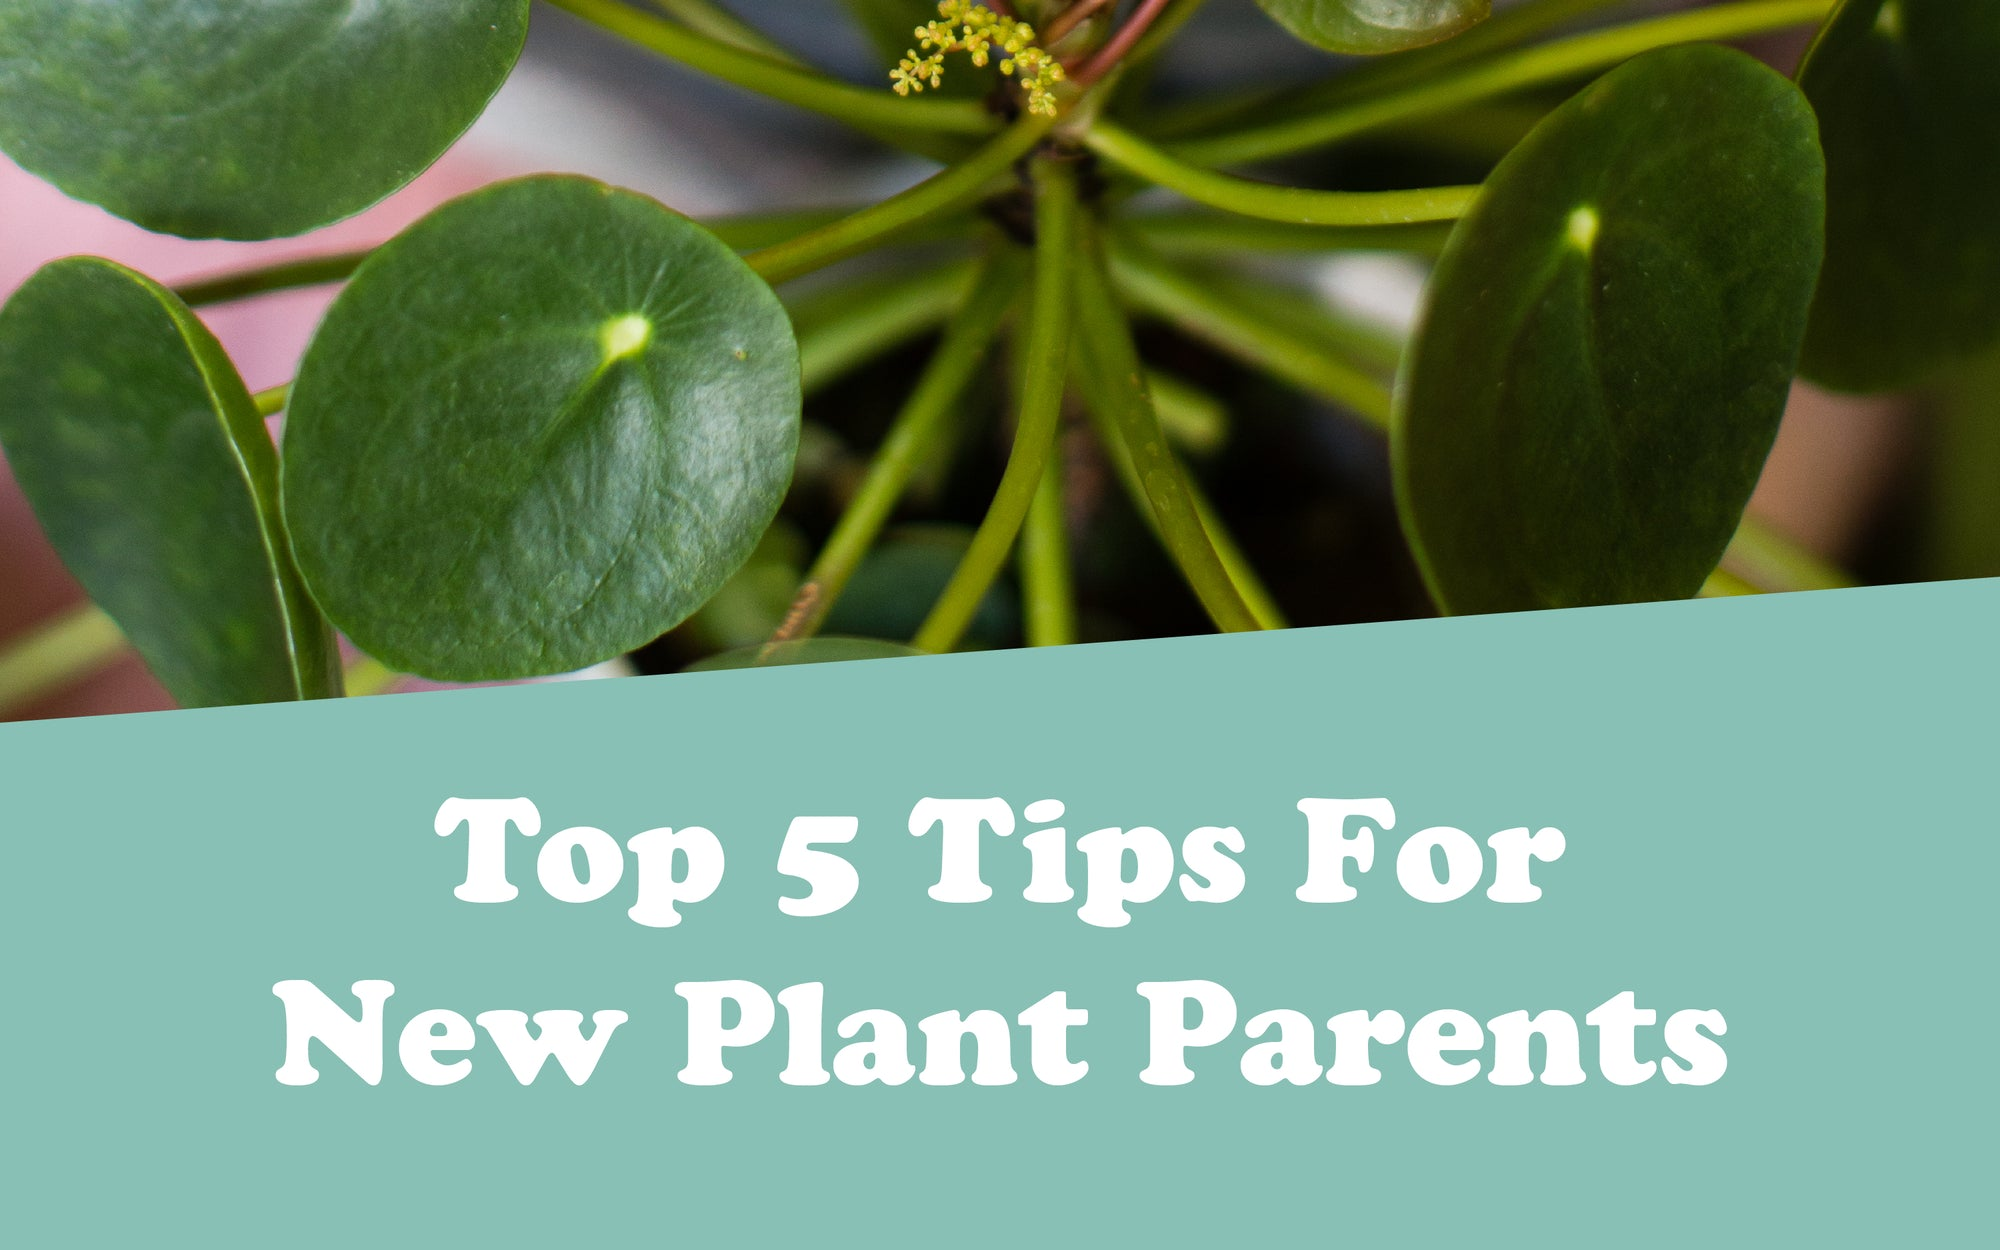 Top 5 Tips For New Plant Parents